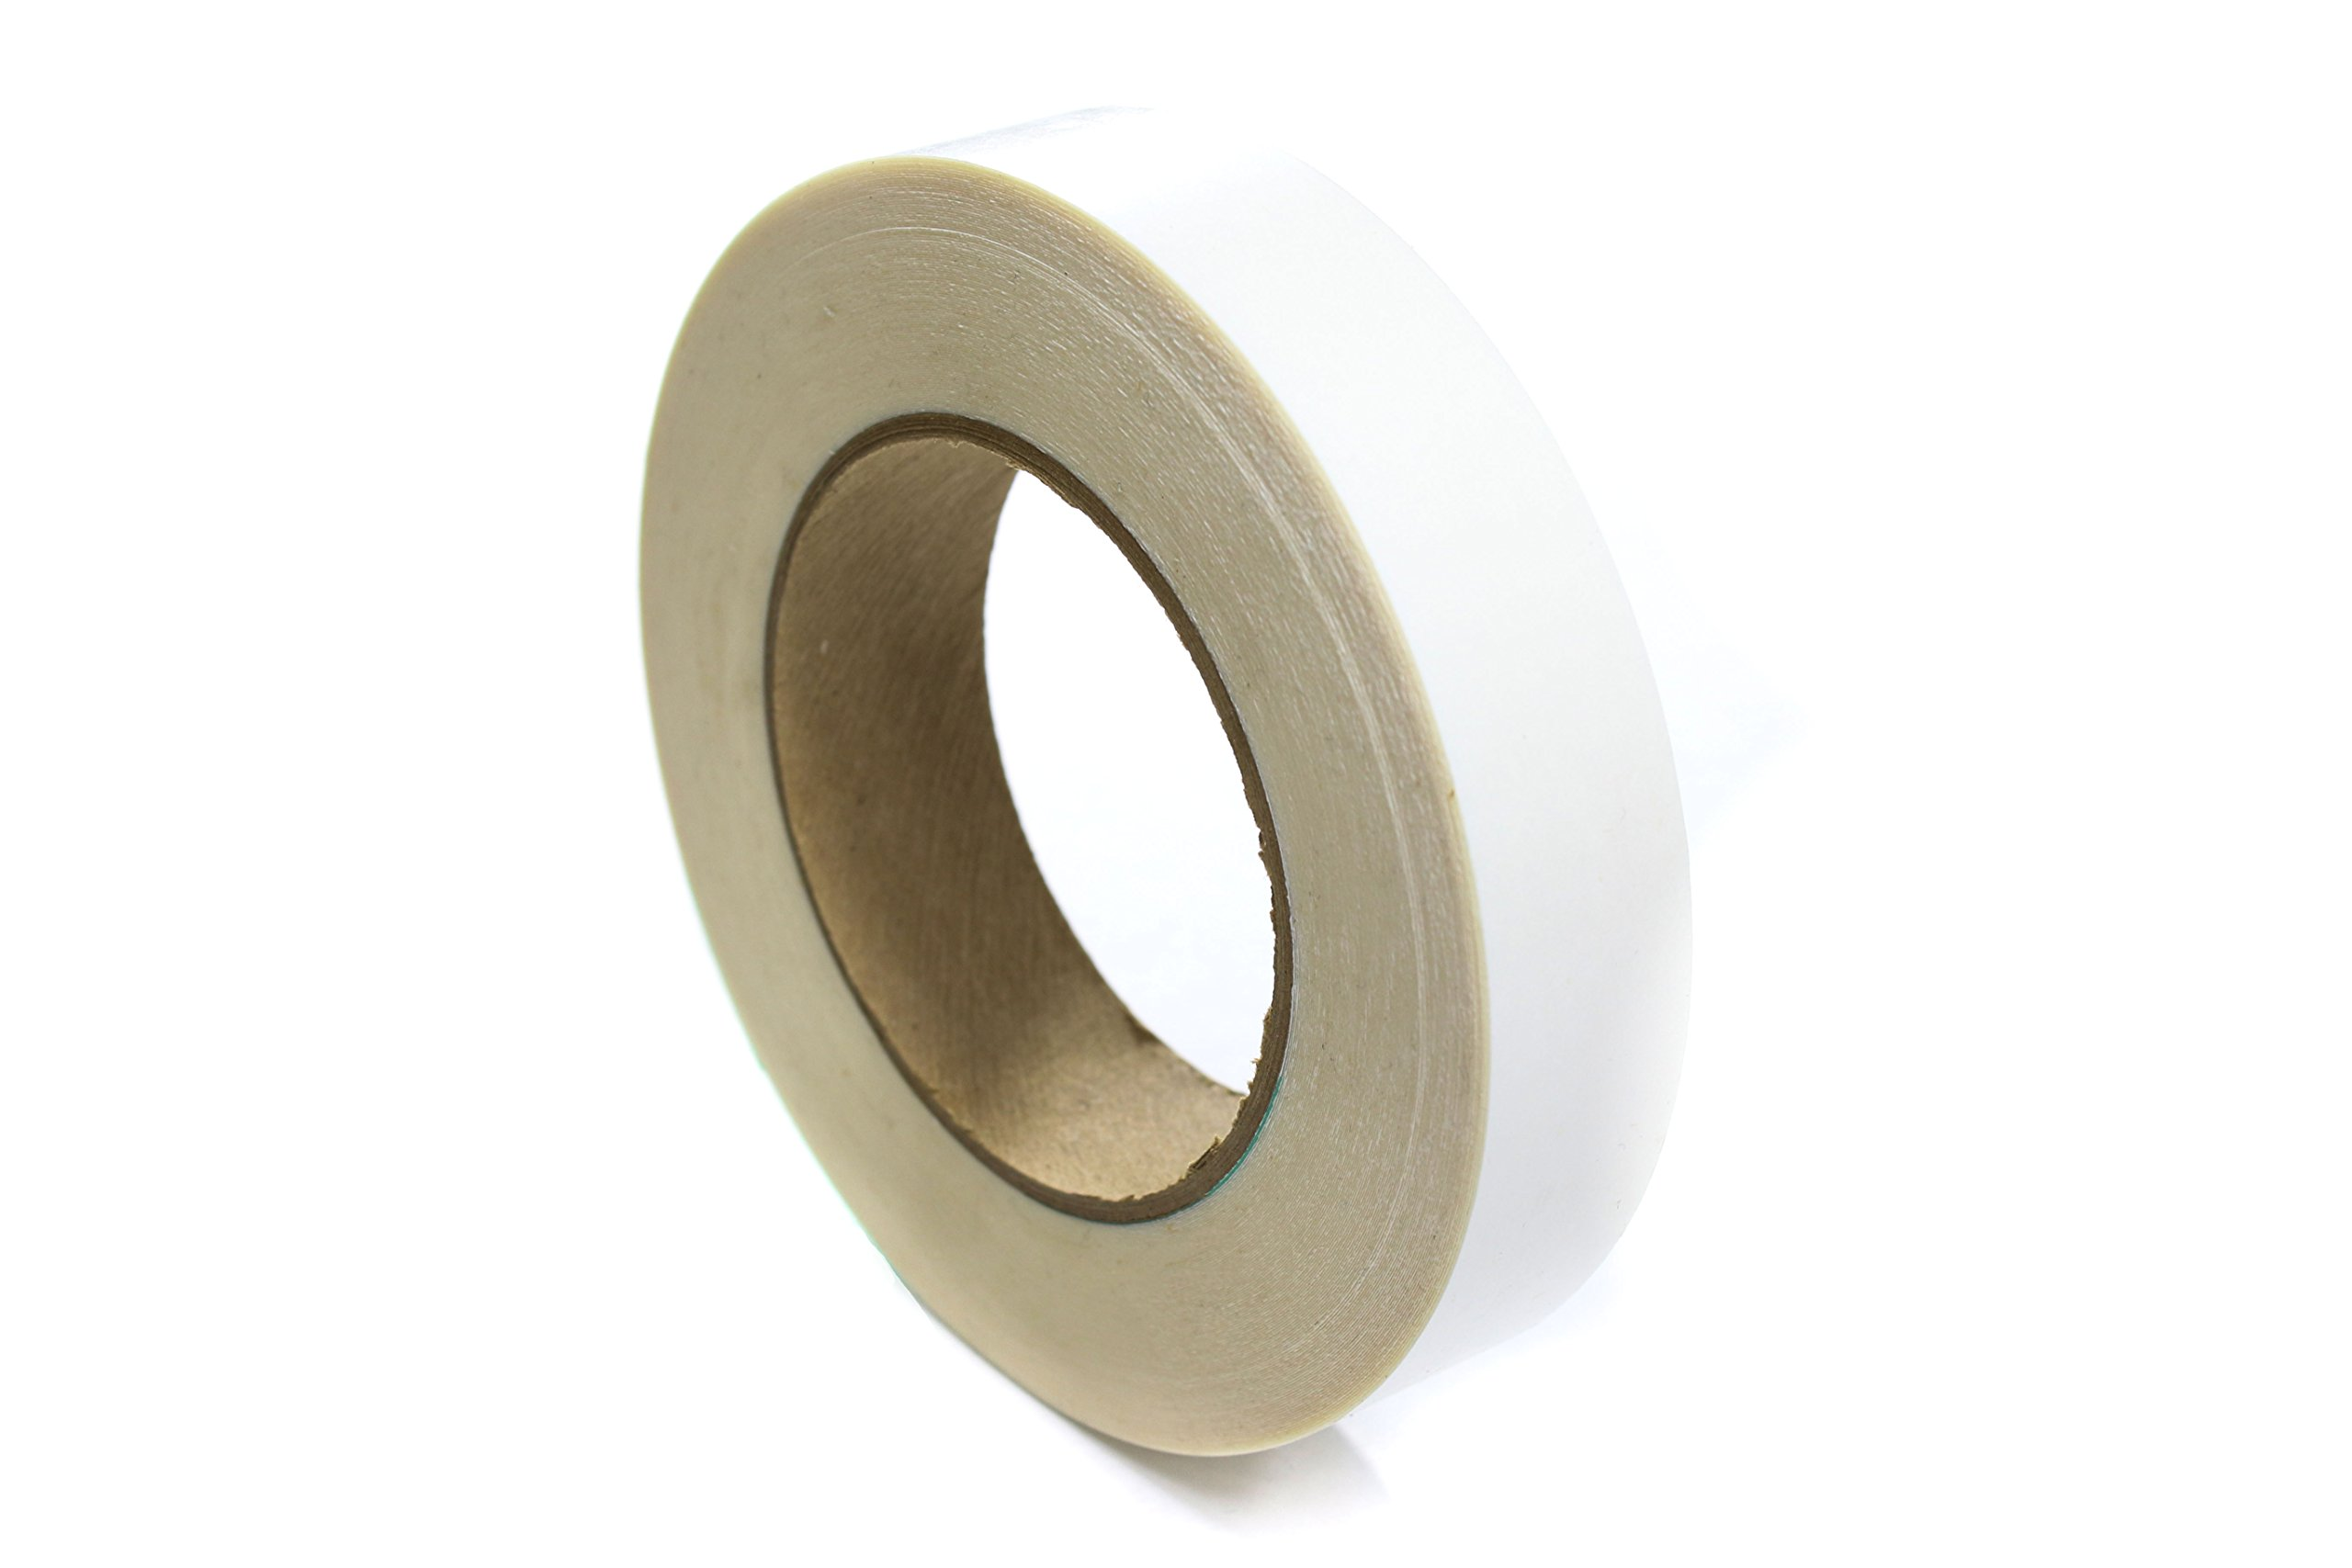 CS Hyde 19-5R UHMW .005 Mil Tape with Rubber Adhesive, 1.5'' x 36 Yards